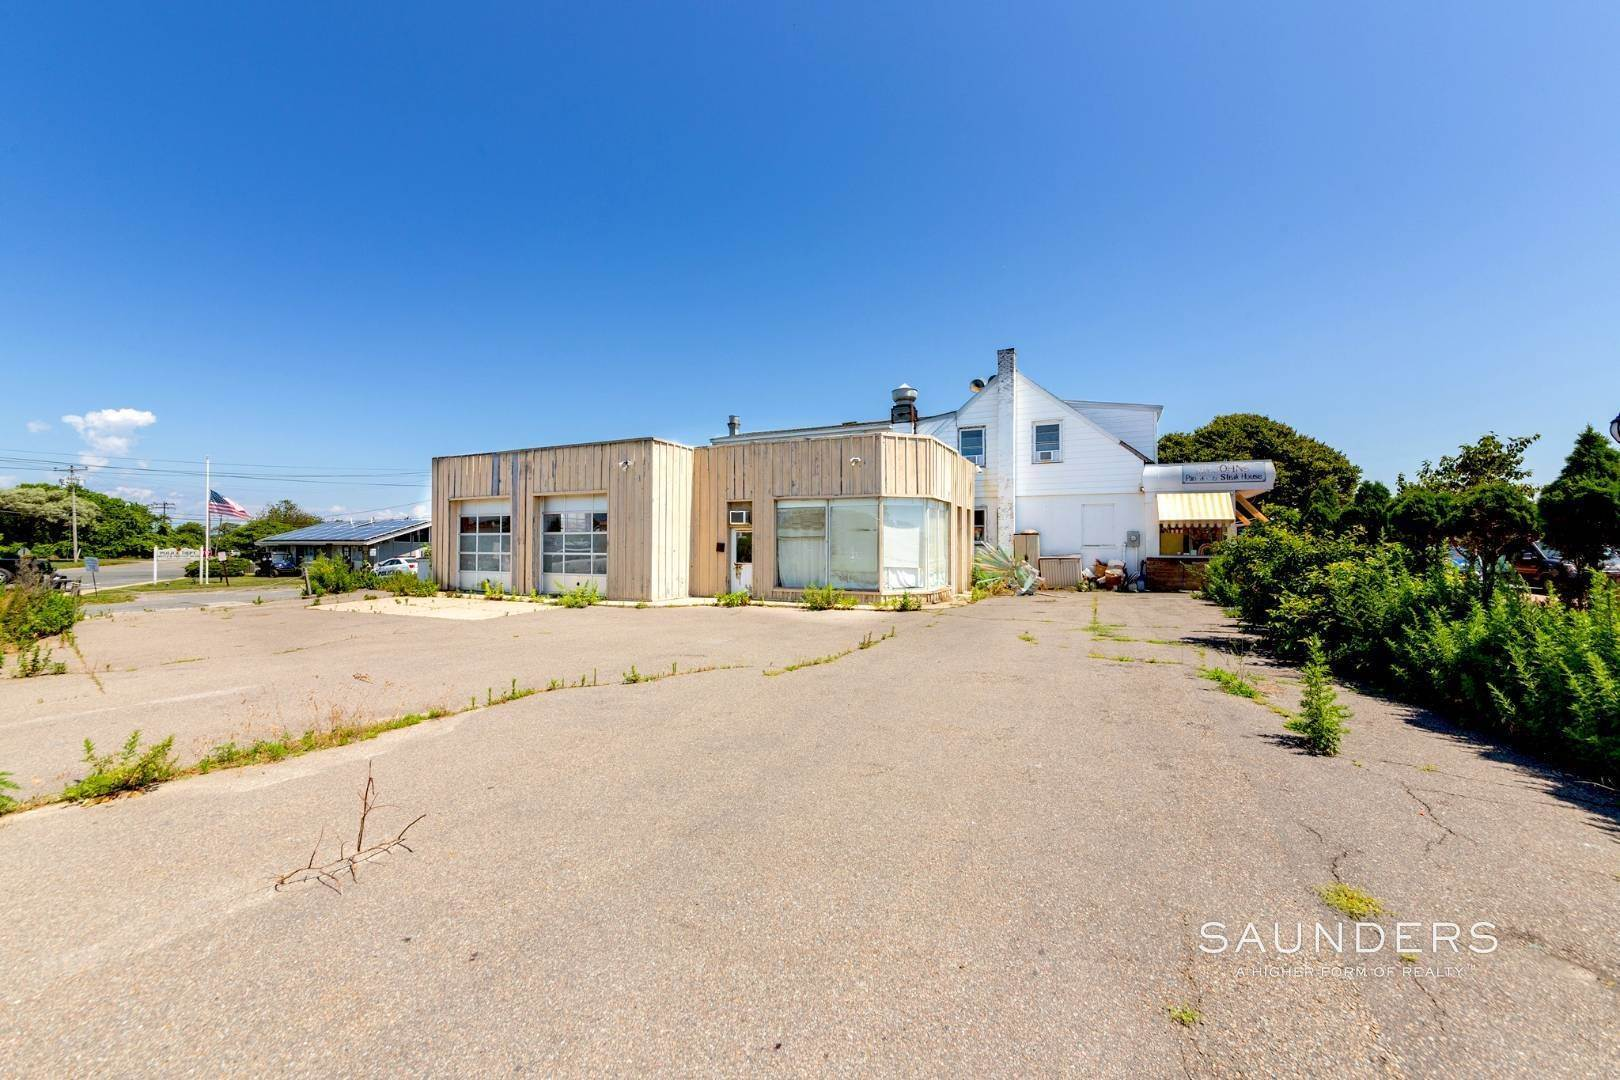 Commercial at Heart Of Montauk- Commercial Property For Sale 717 Montauk Highway, Montauk, East Hampton Town, NY 11954